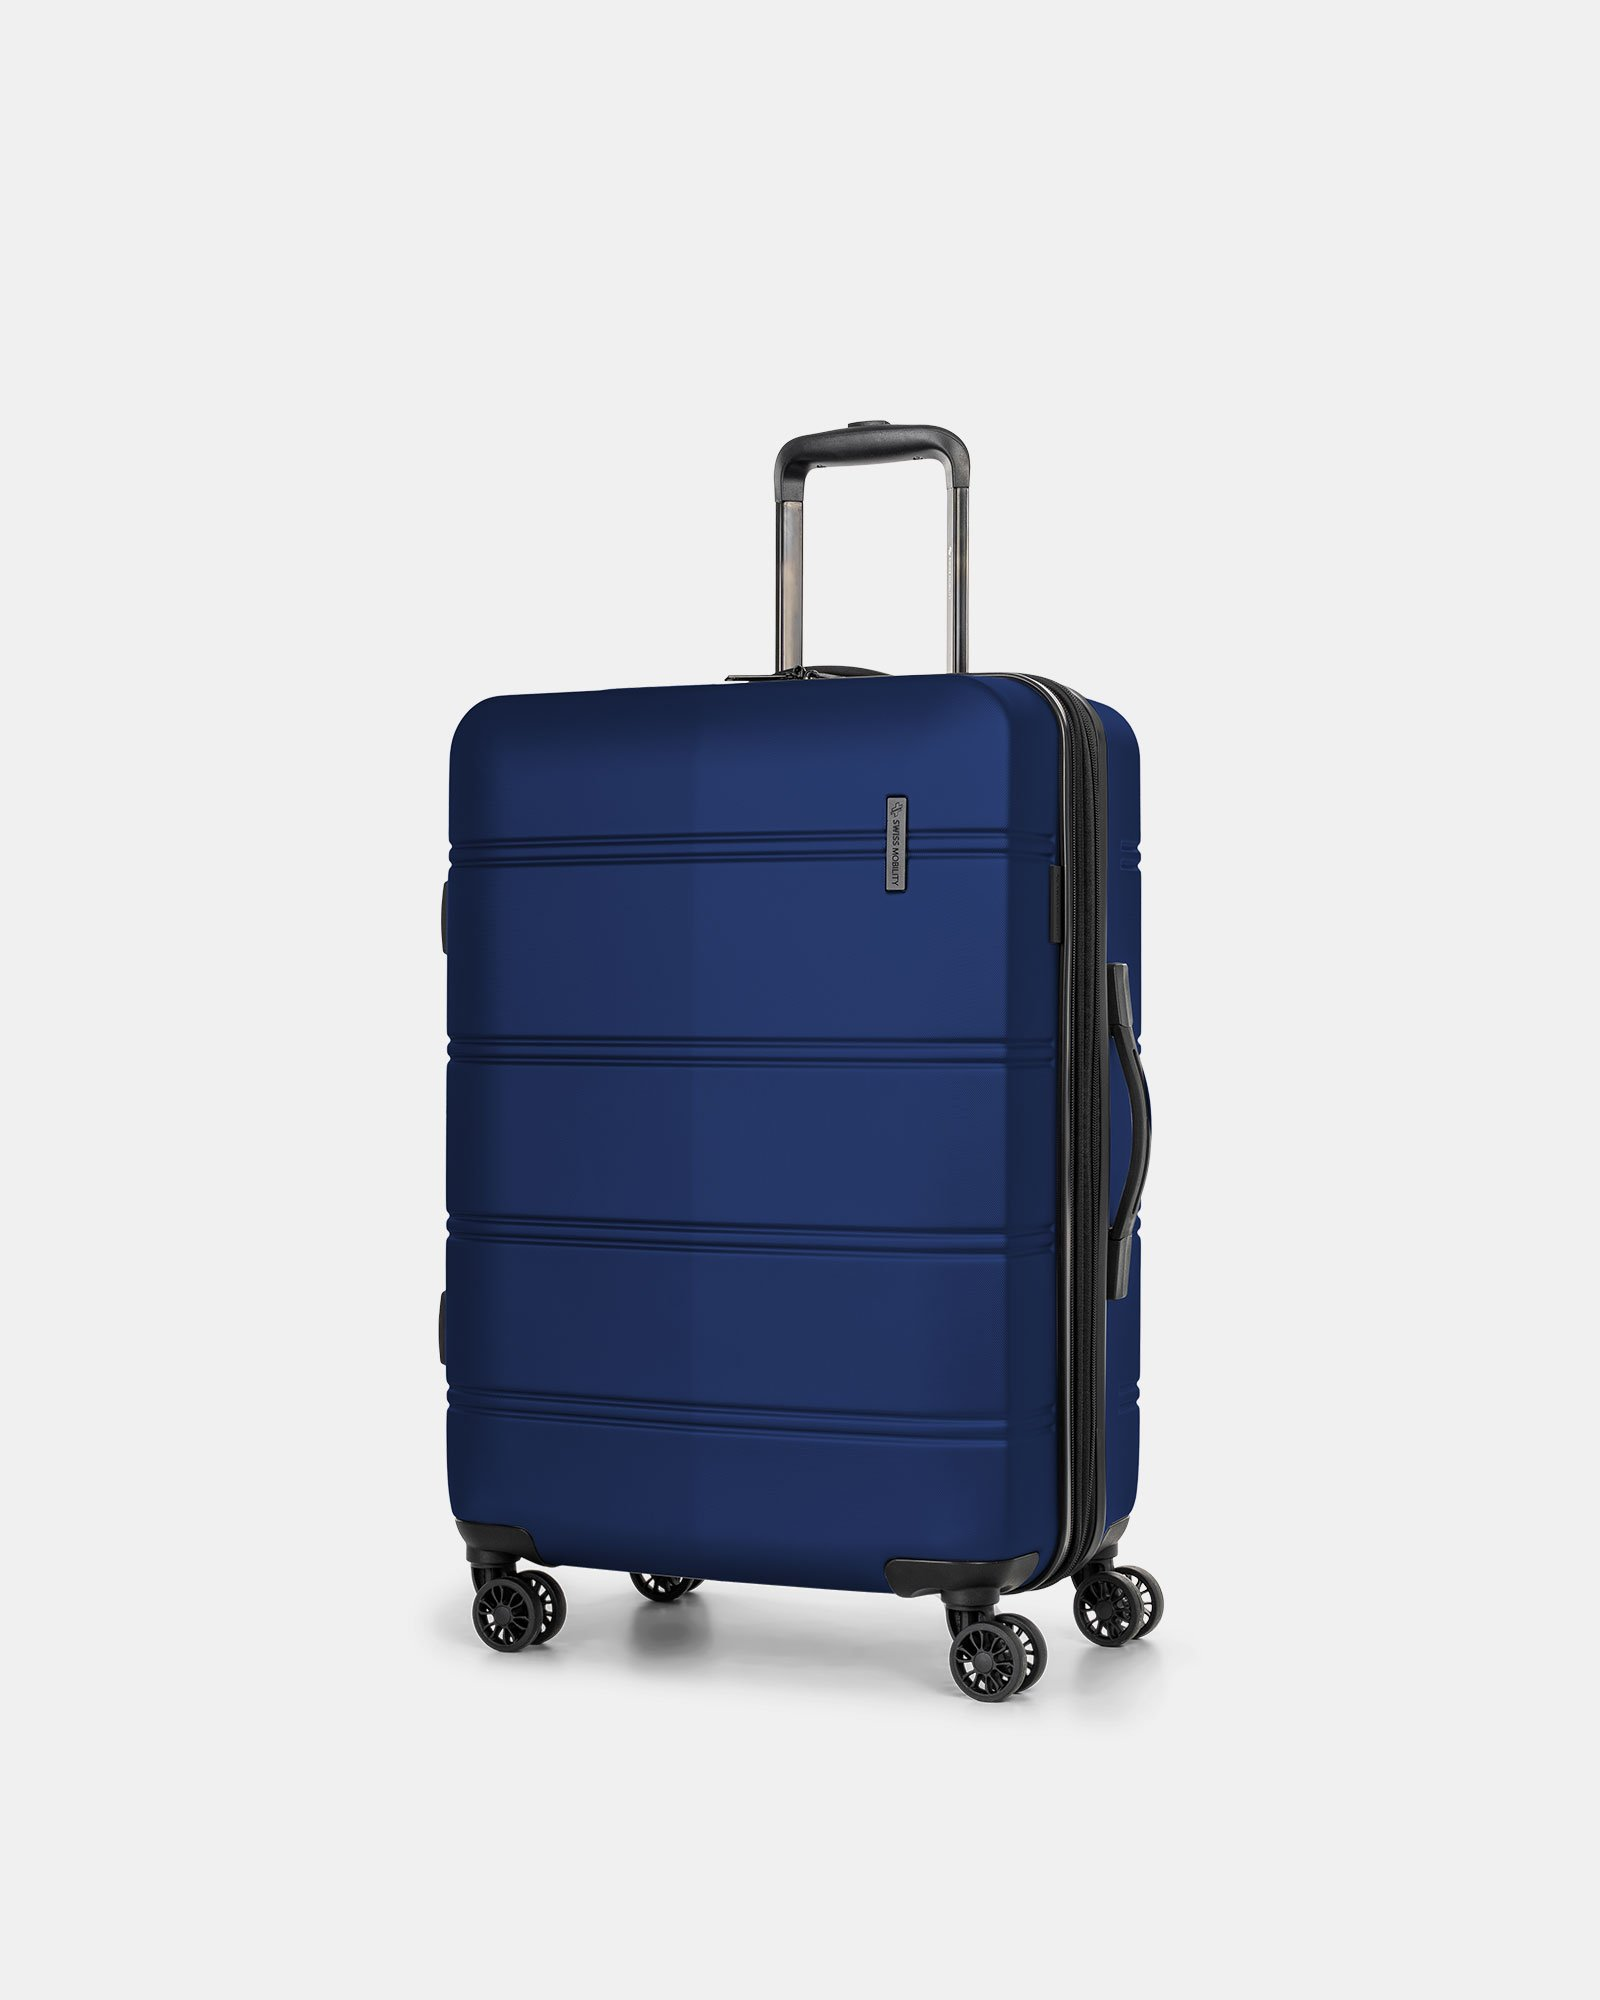 "LAX - 26"" LIGHTWEIGHT HARDSIDE LUGGAGE - BLUE - Swiss Mobility - Zoom"